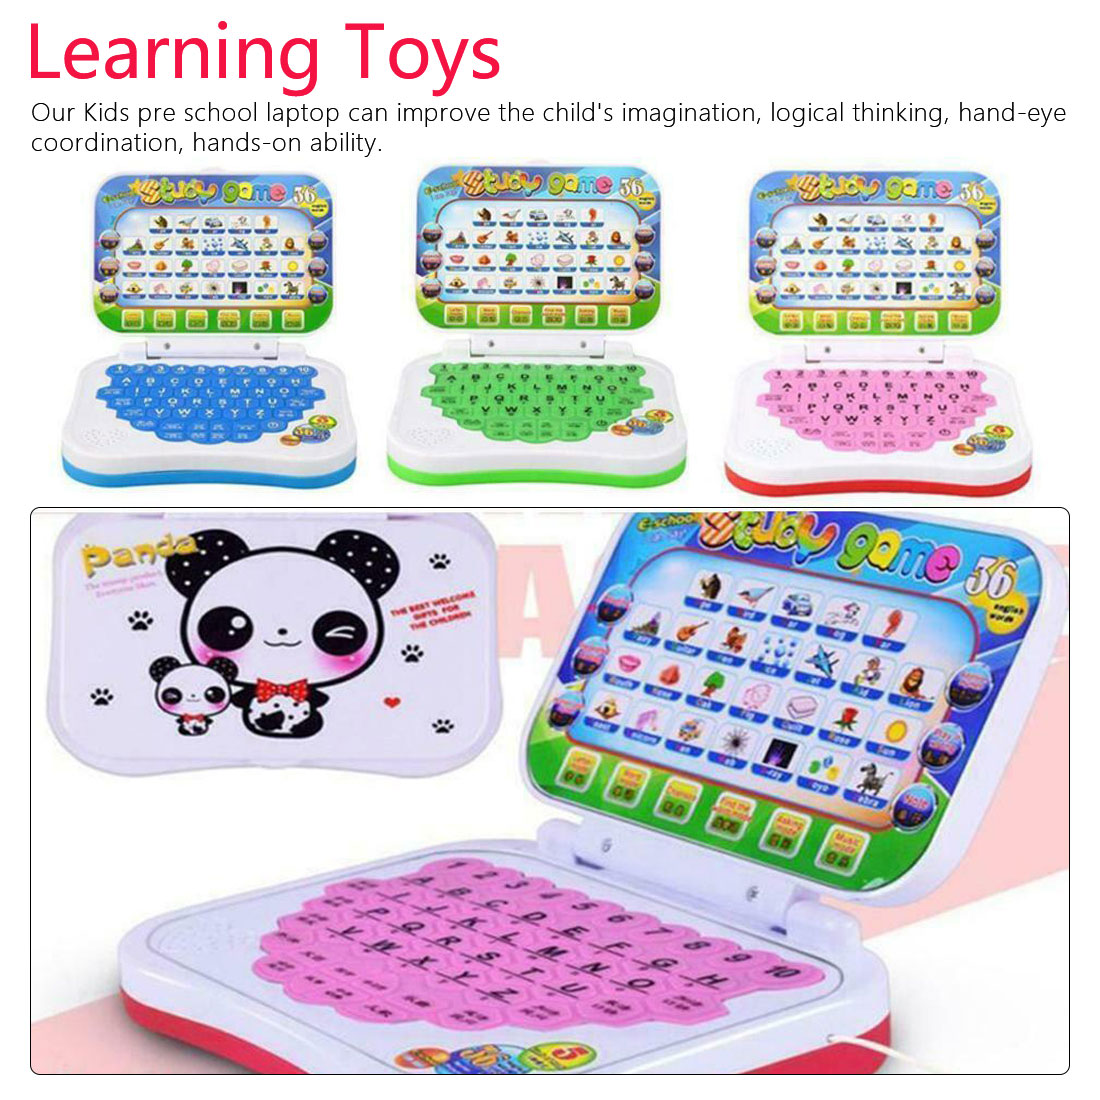 Computer-Toy Laptop-Game Learning Study Educational Baby Kids Pre-School Send In-Random